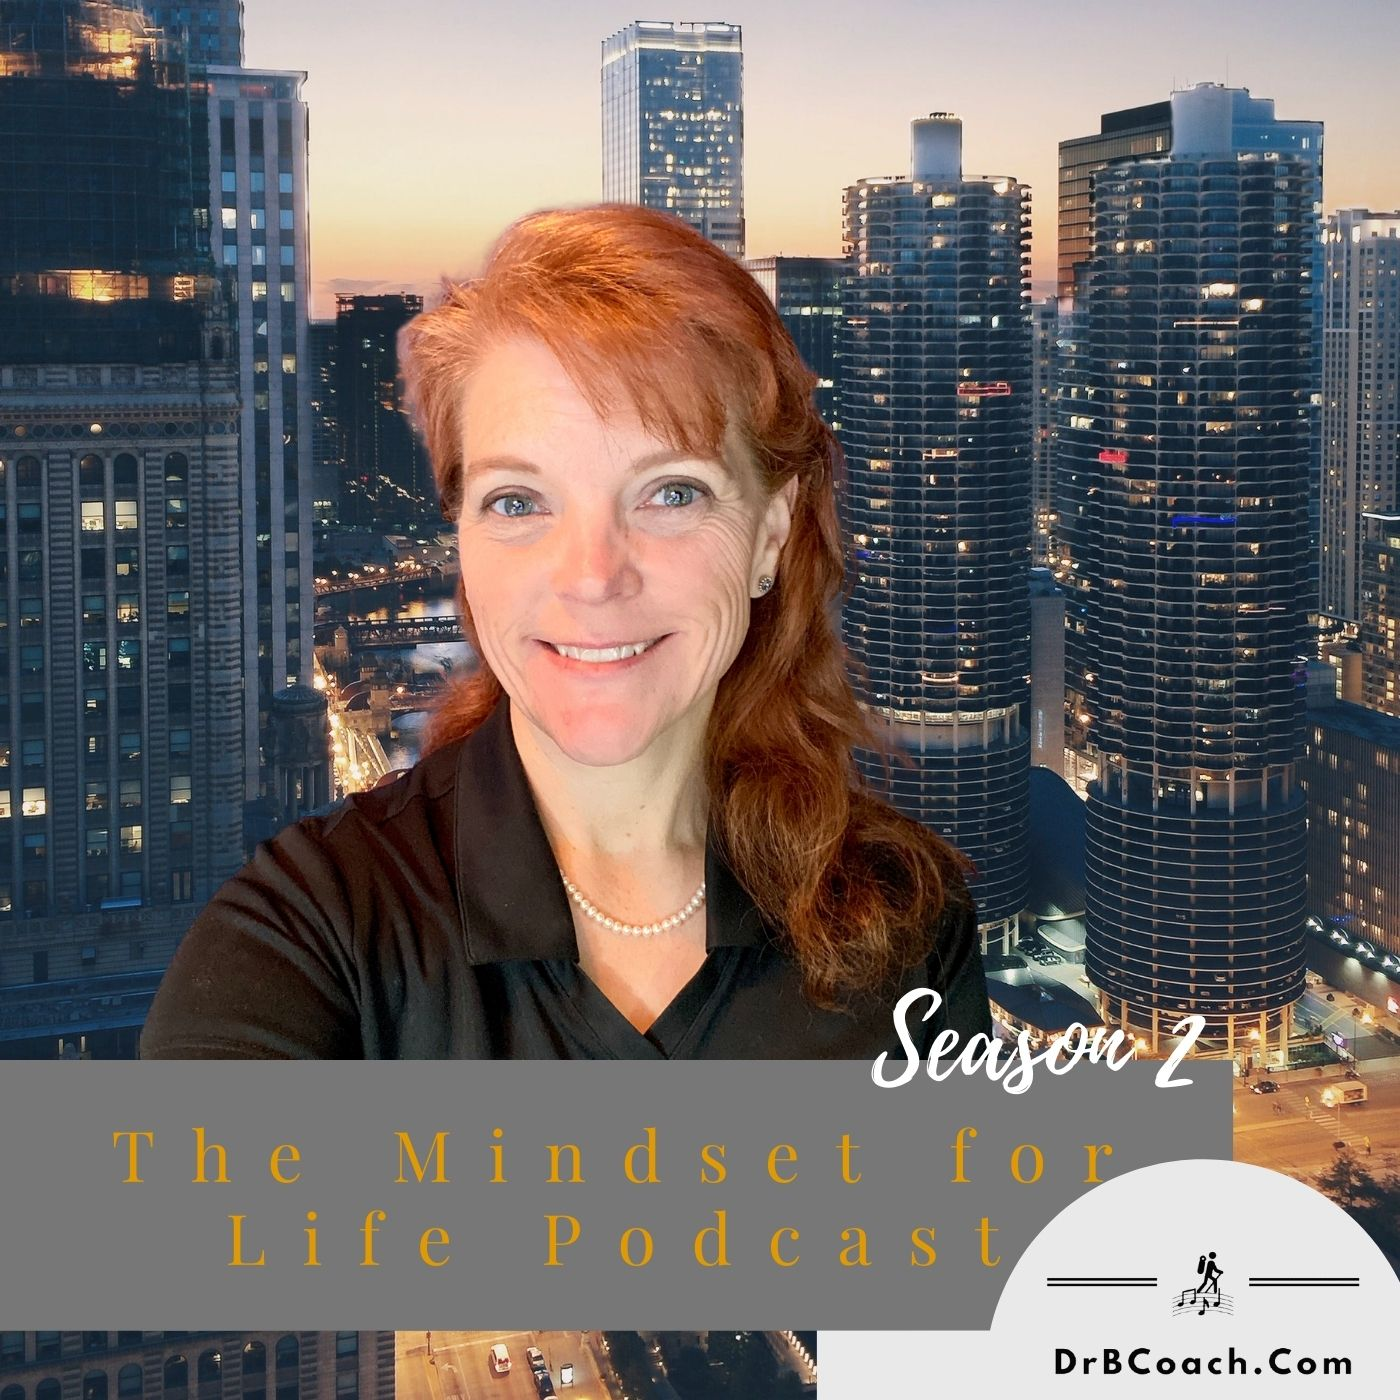 The Mindset for Life Podcast